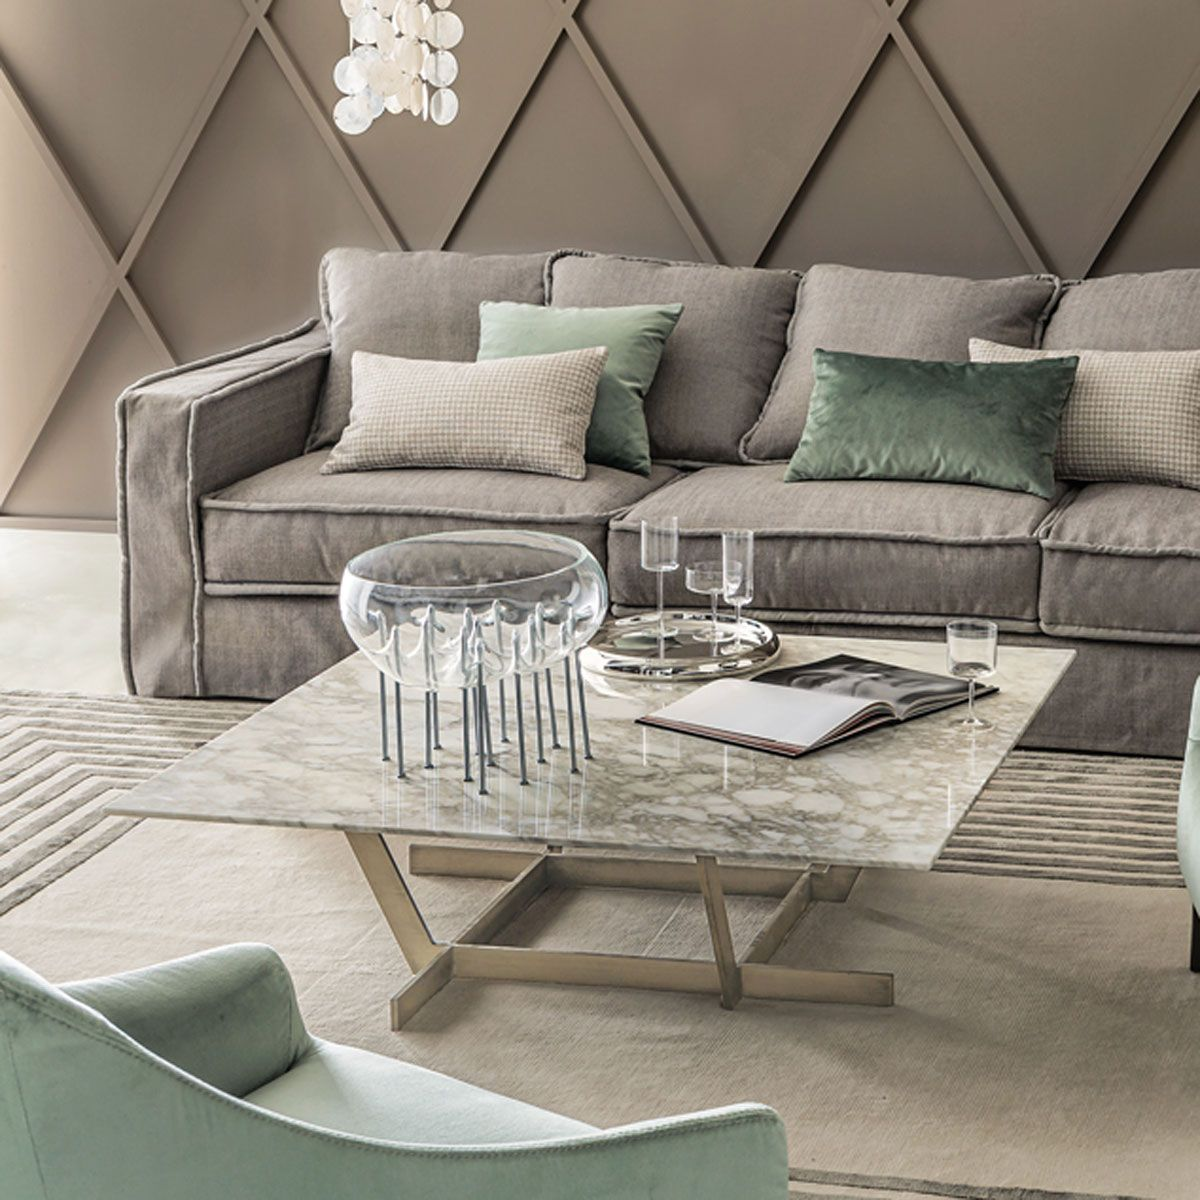 News ten luxury coffee tables to fall in love with passerini com